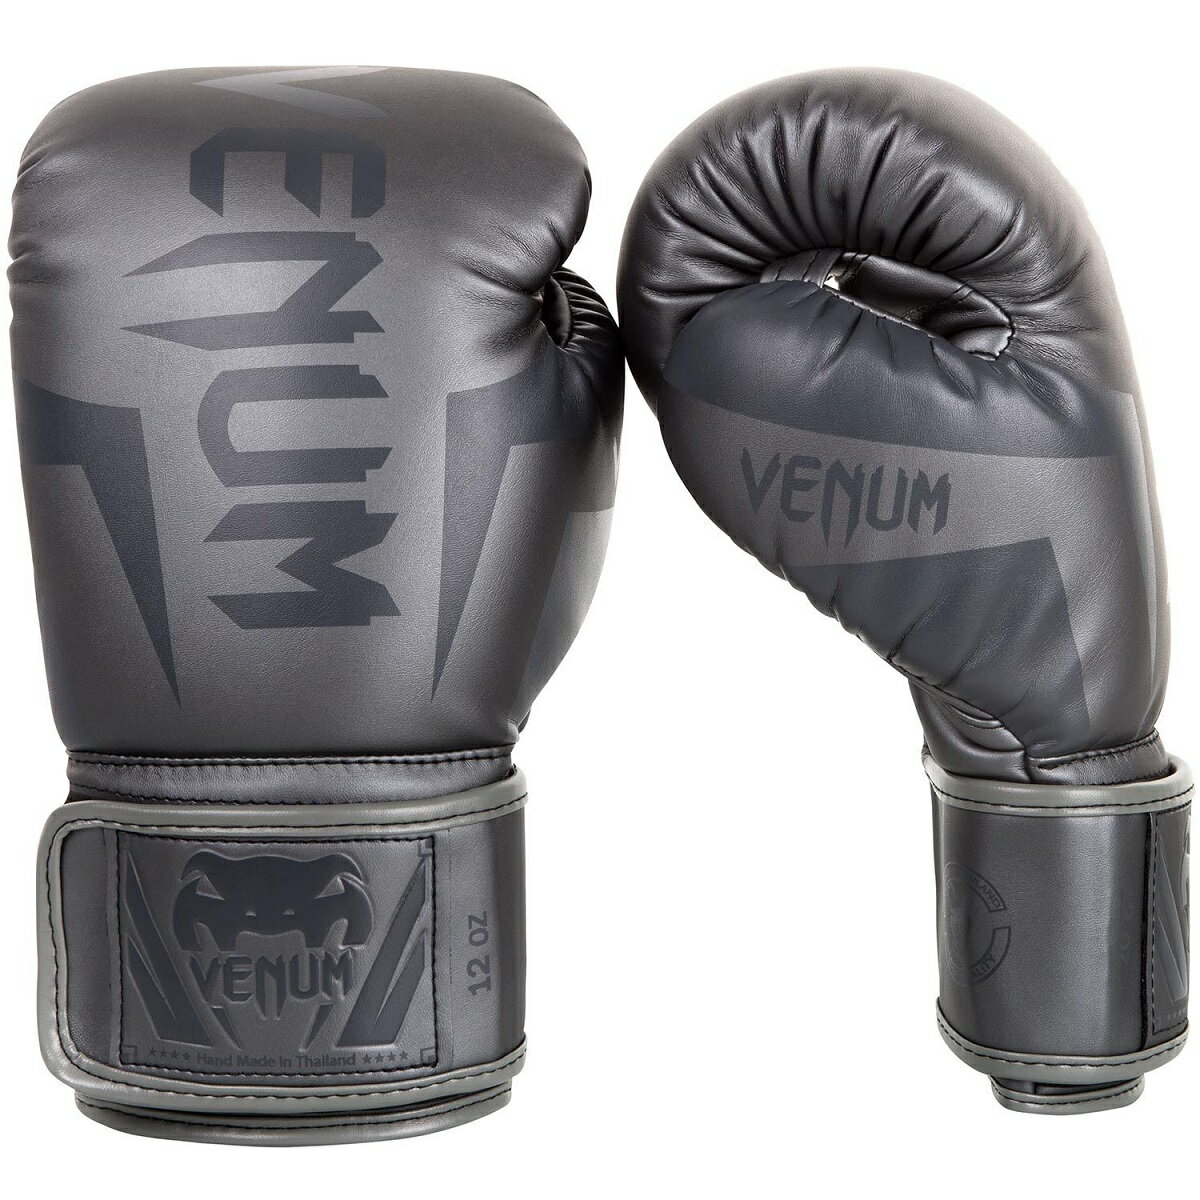 VENUM ボクシンググローブ ELITE BOXING GLOVES (グレー×グレー) //スパーリンググローブ ボクシング キックボクシング フィットネス 送料無料